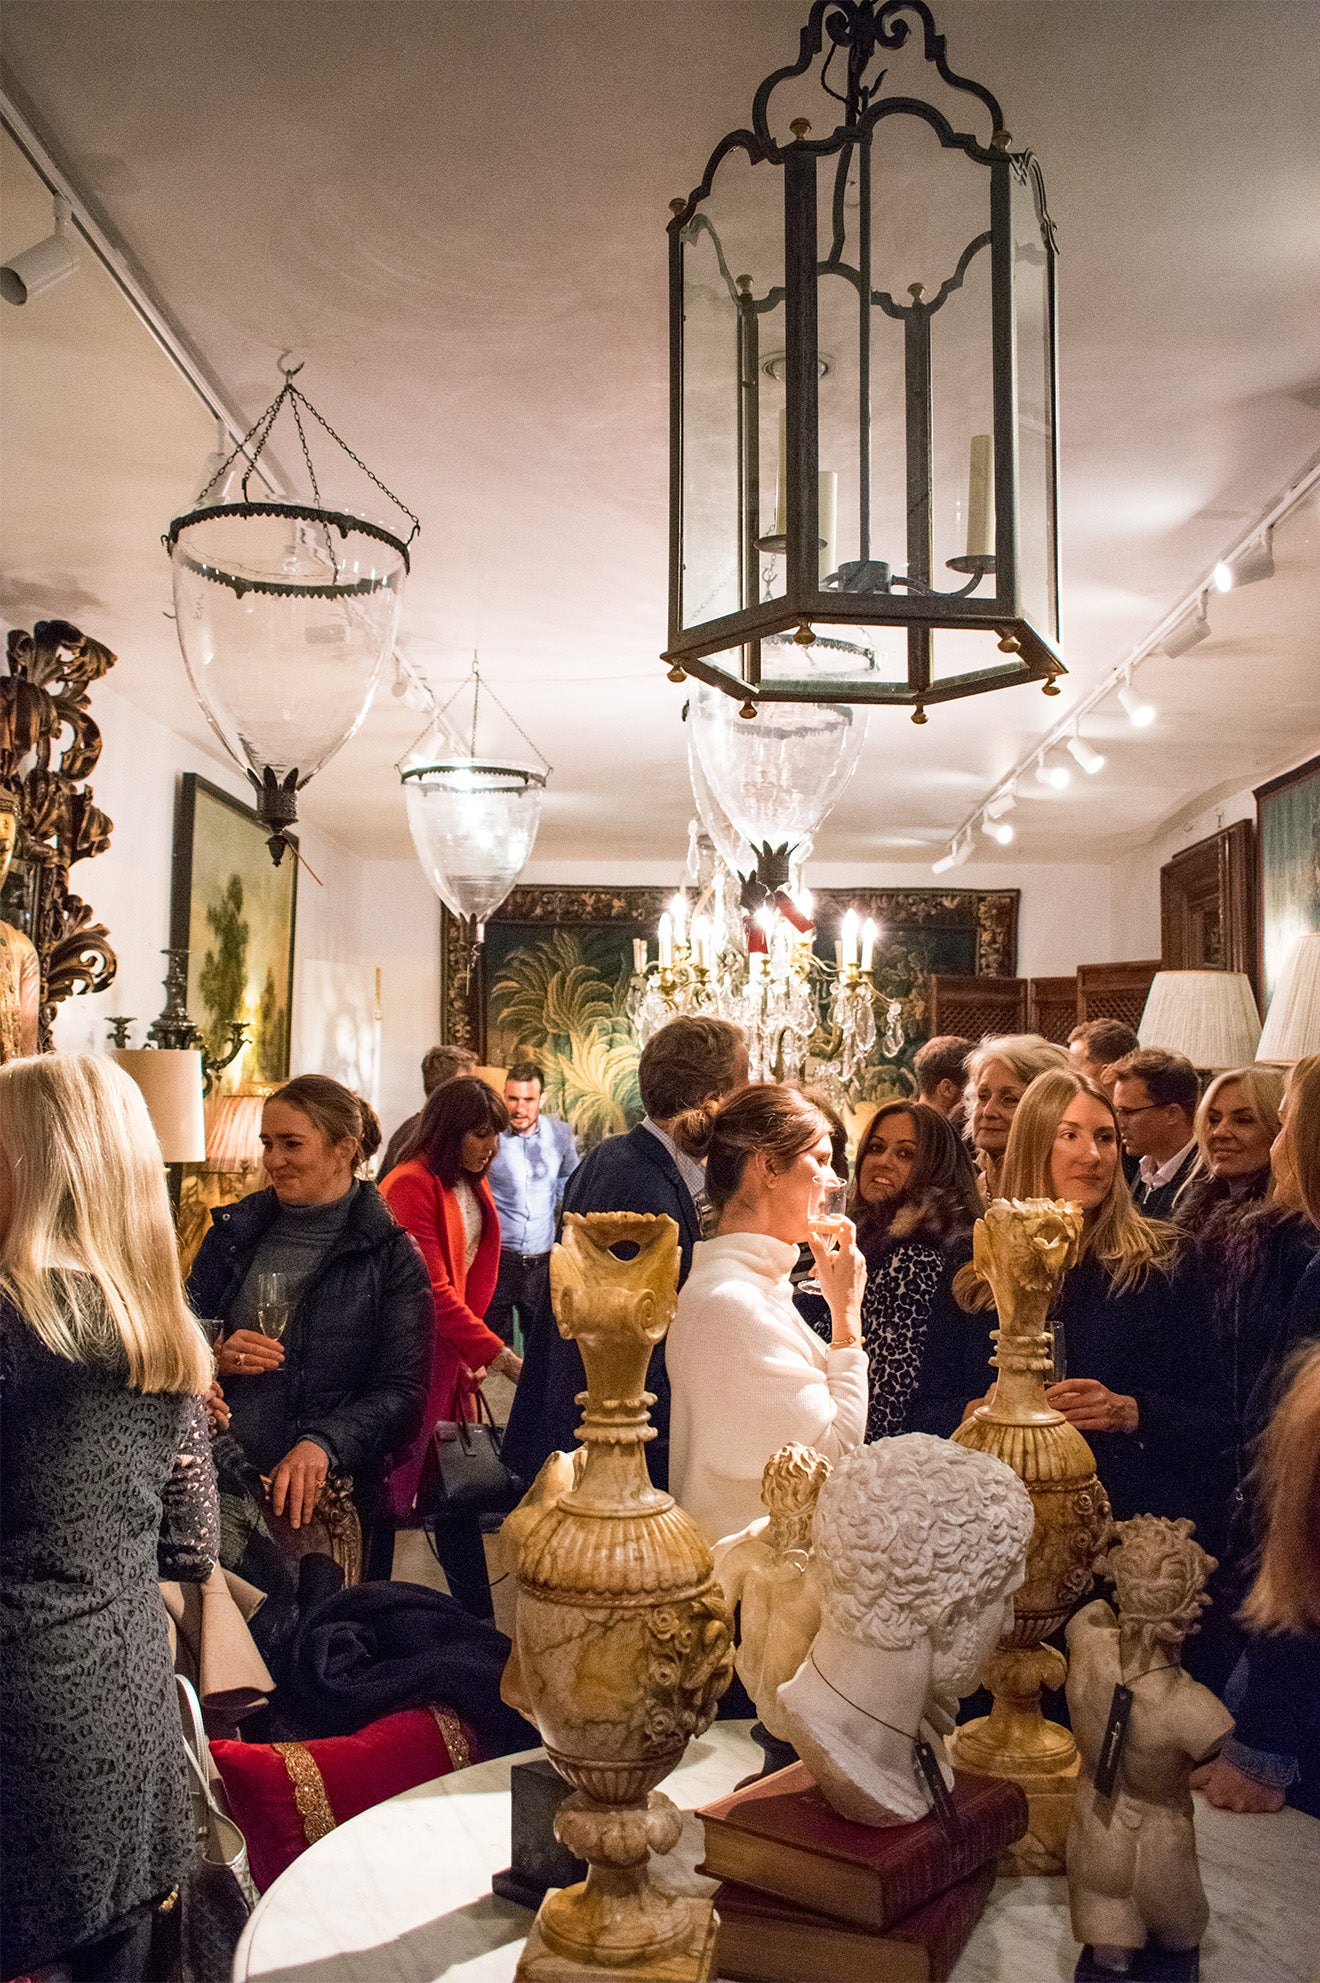 Interior Design Tours UK Launch Event at Guinevere Antiques